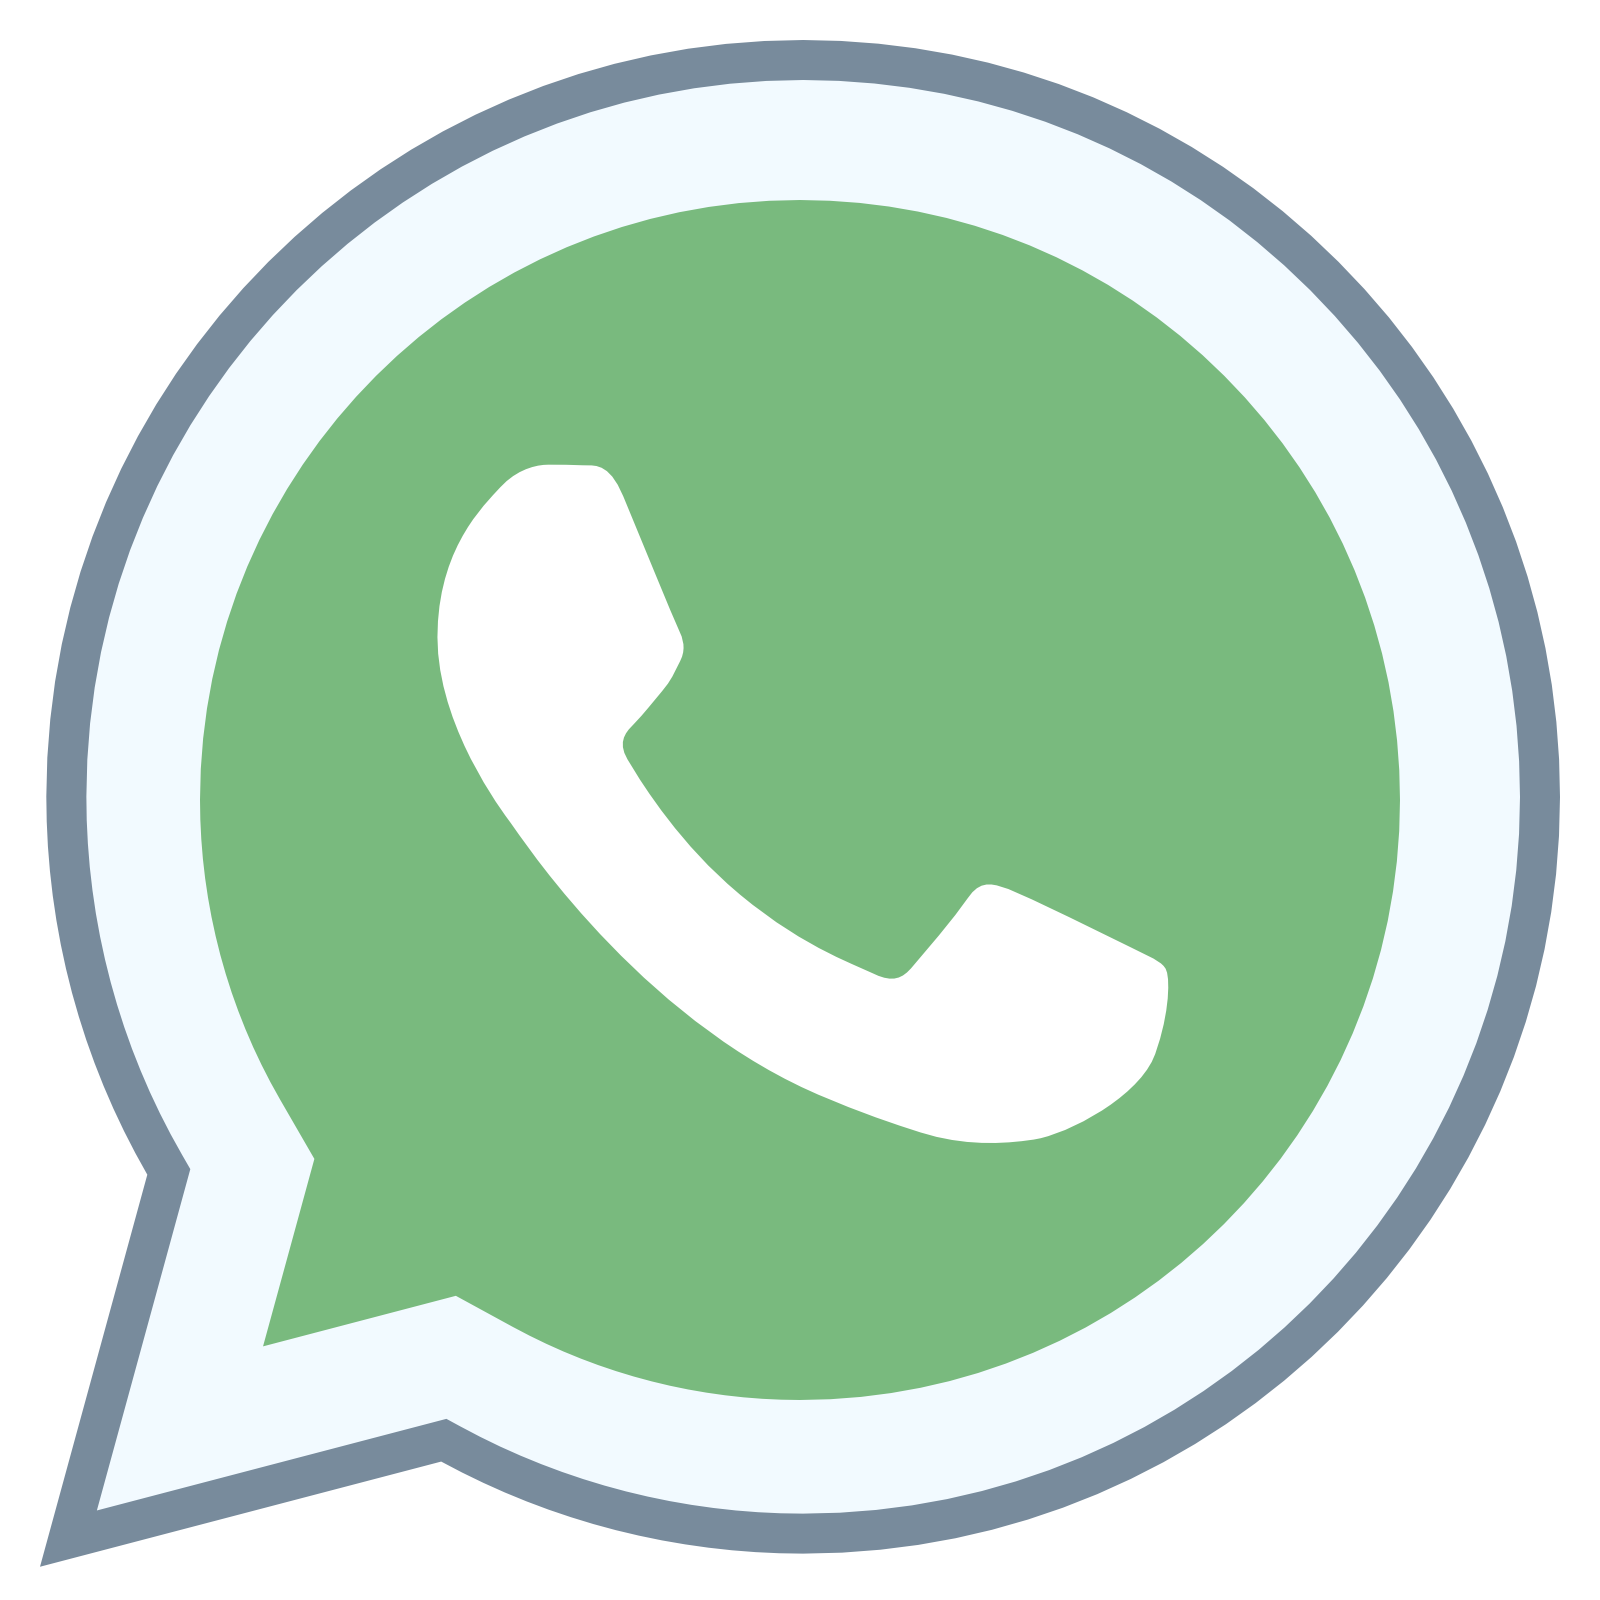 Whatsapp HD PNG - 96231